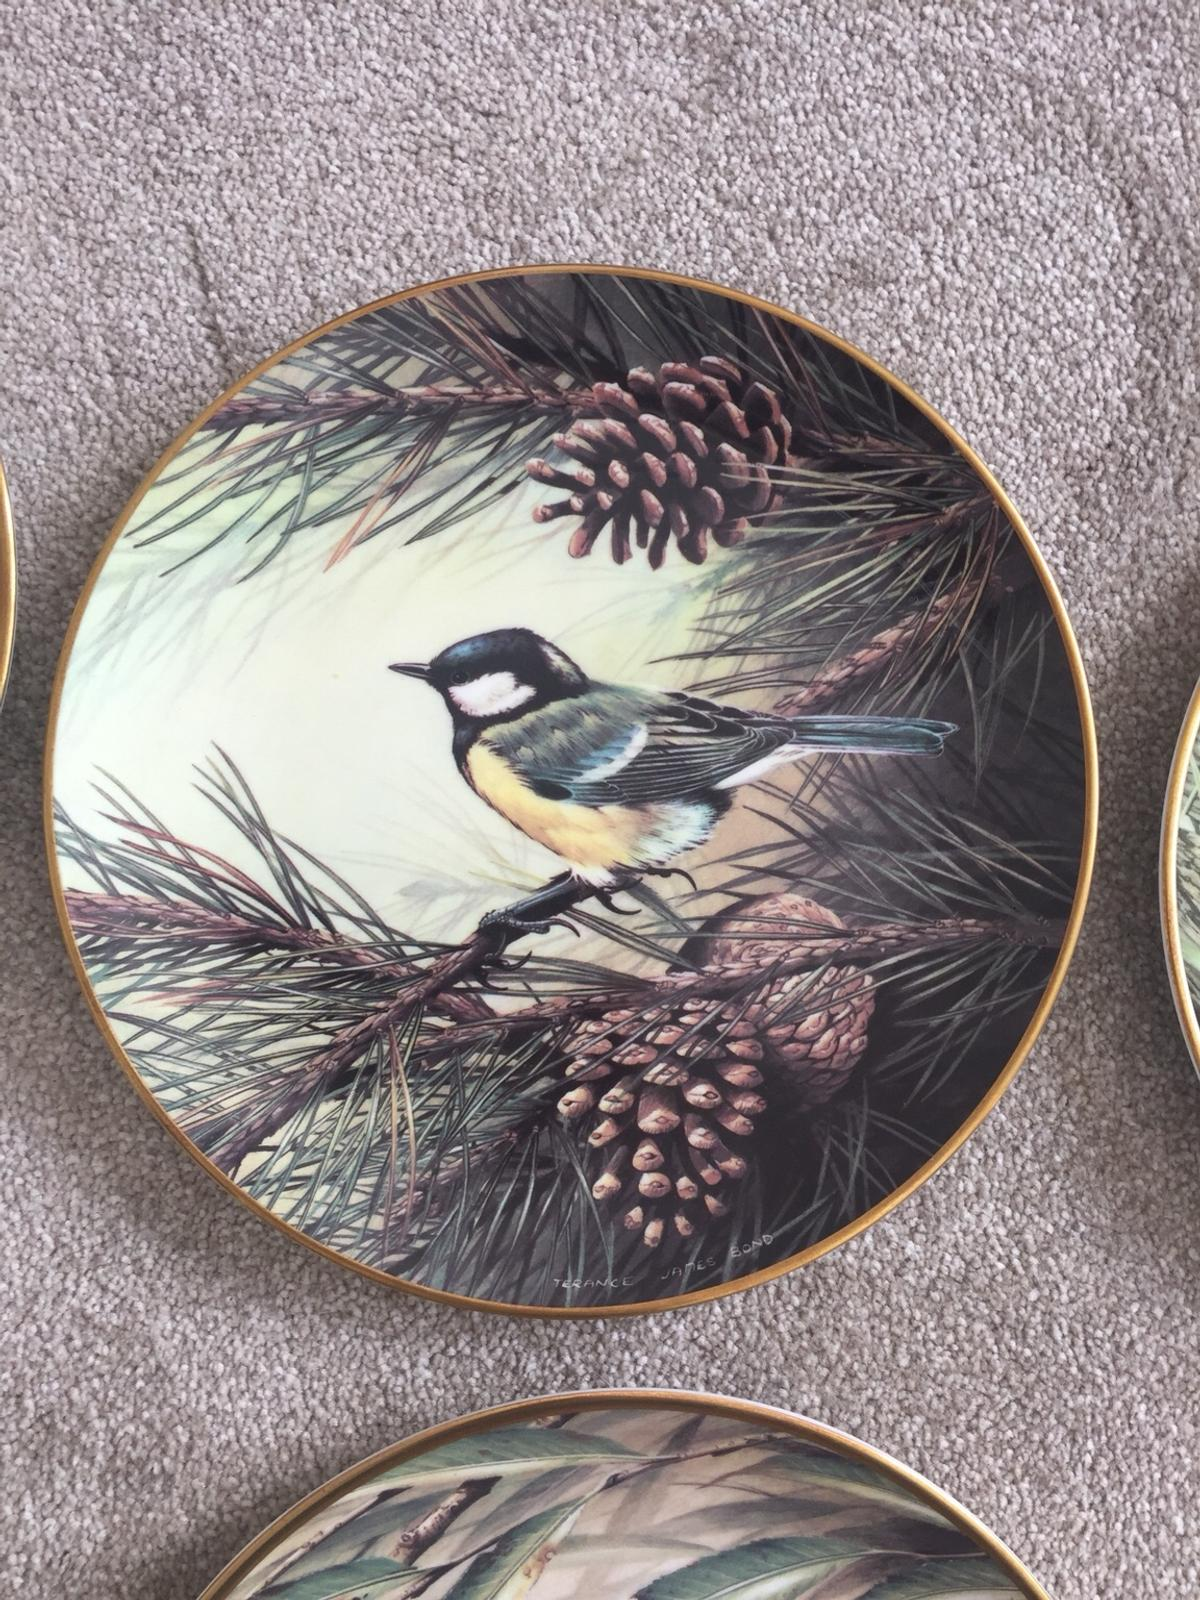 RSPB Wedgwood Centenary Plates Collection x10 in Kelsall for